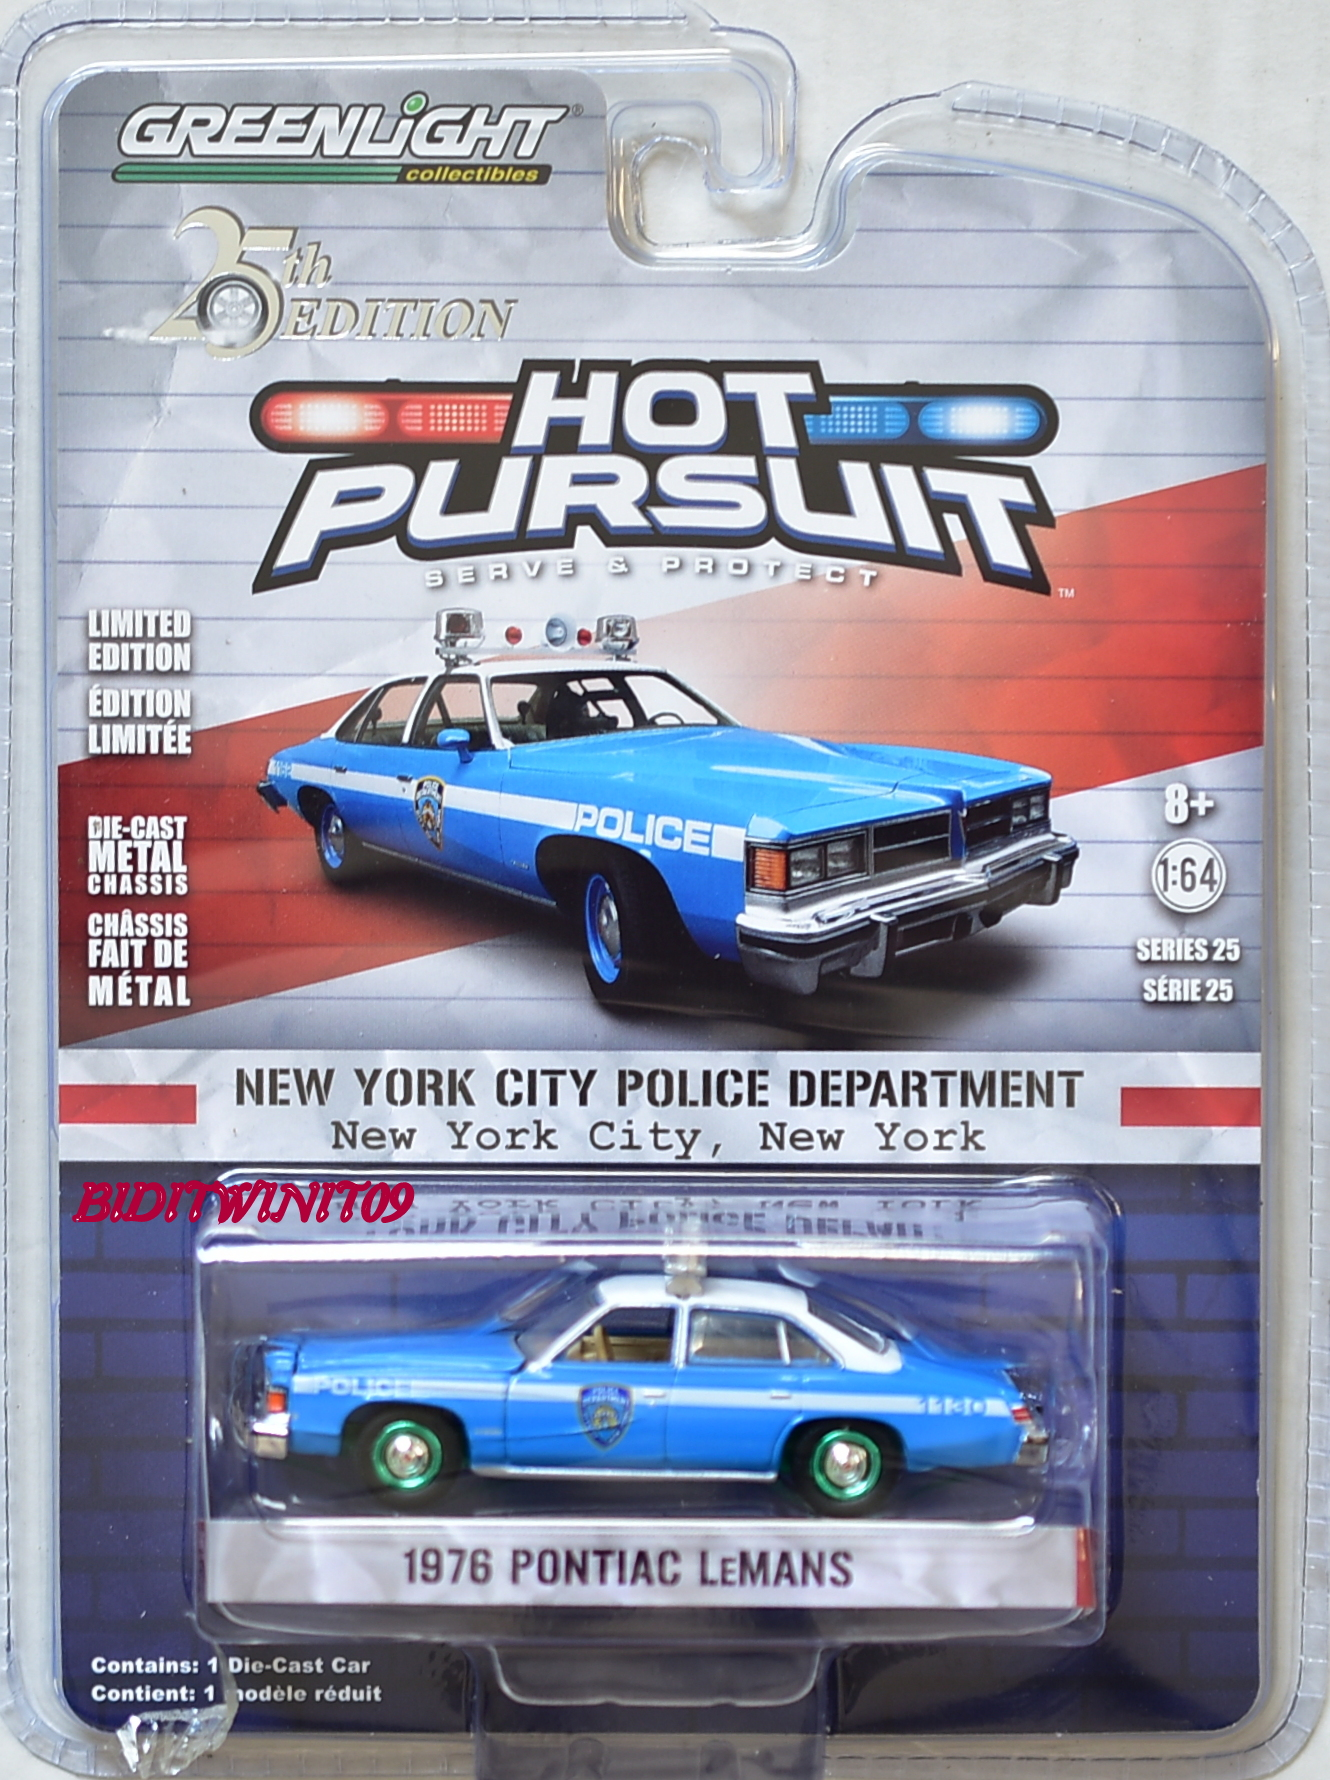 GREENLIGHT 2018 HOT PURSUIT SERIES 25 1976 PONTIAC LEMANS GREEN MACHINE E+